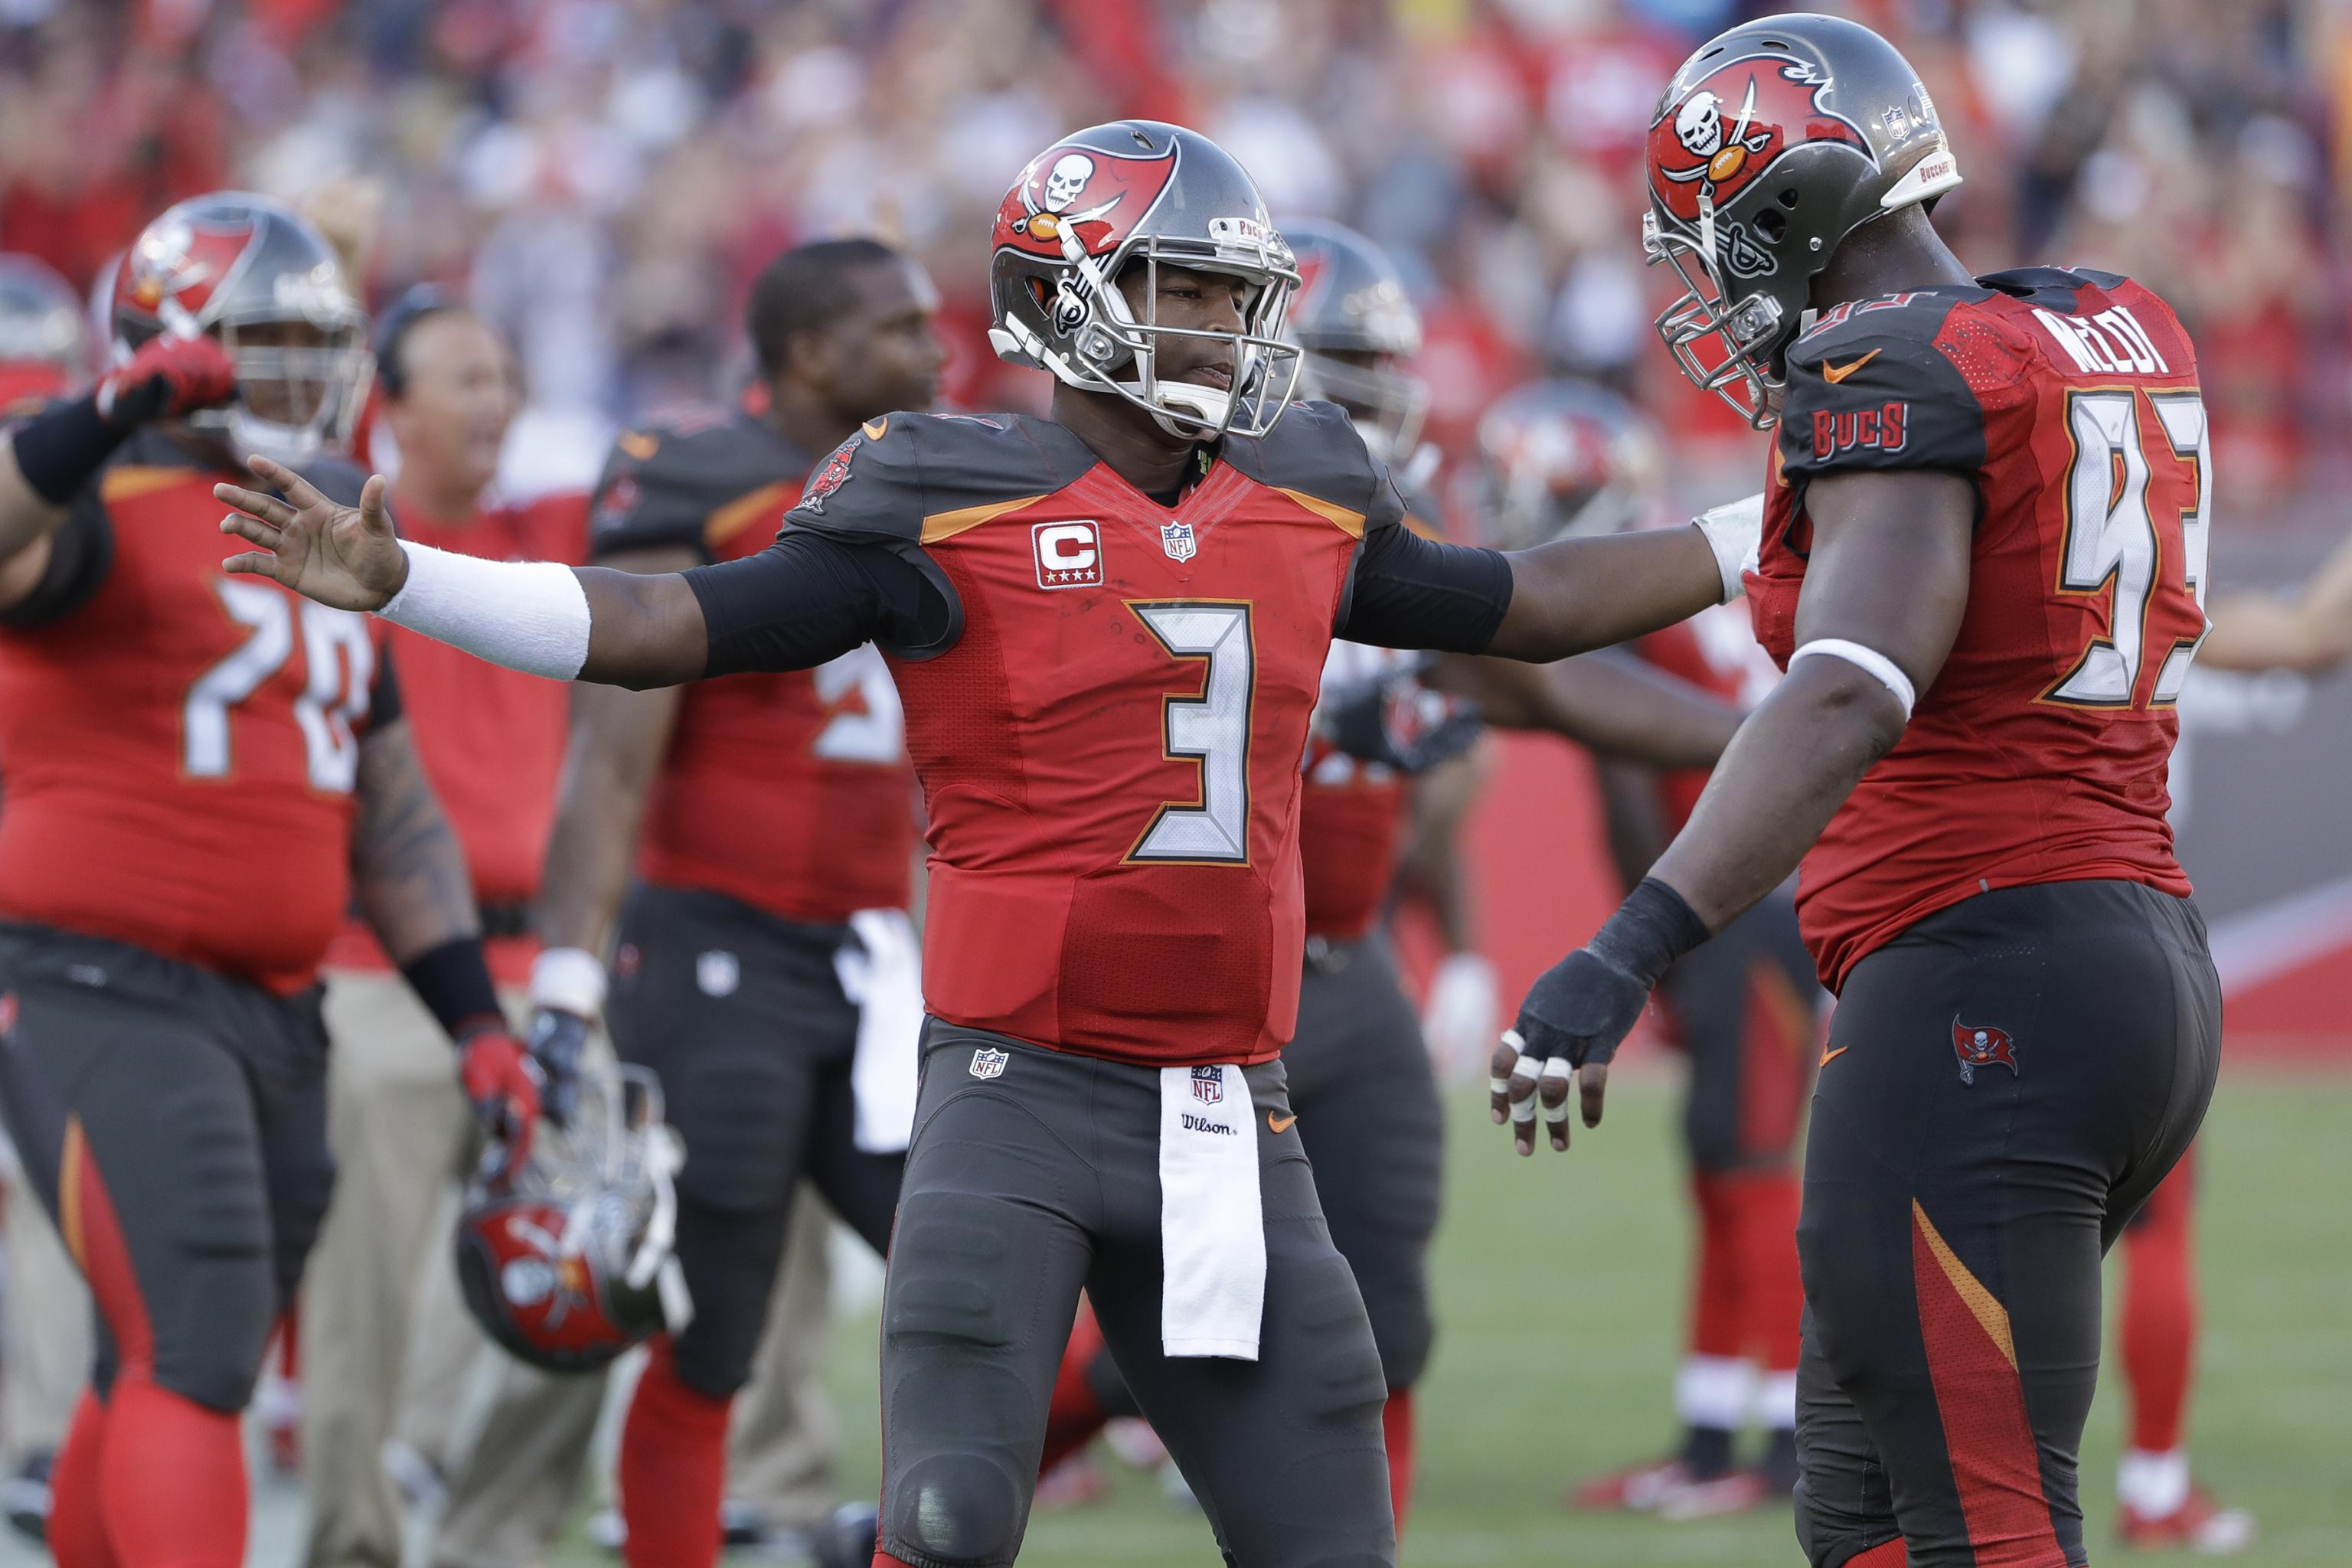 2017 tampa bay buccaneers schedule full listing of dates times and tv info bleacher report latest news videos and highlights 2017 tampa bay buccaneers schedule